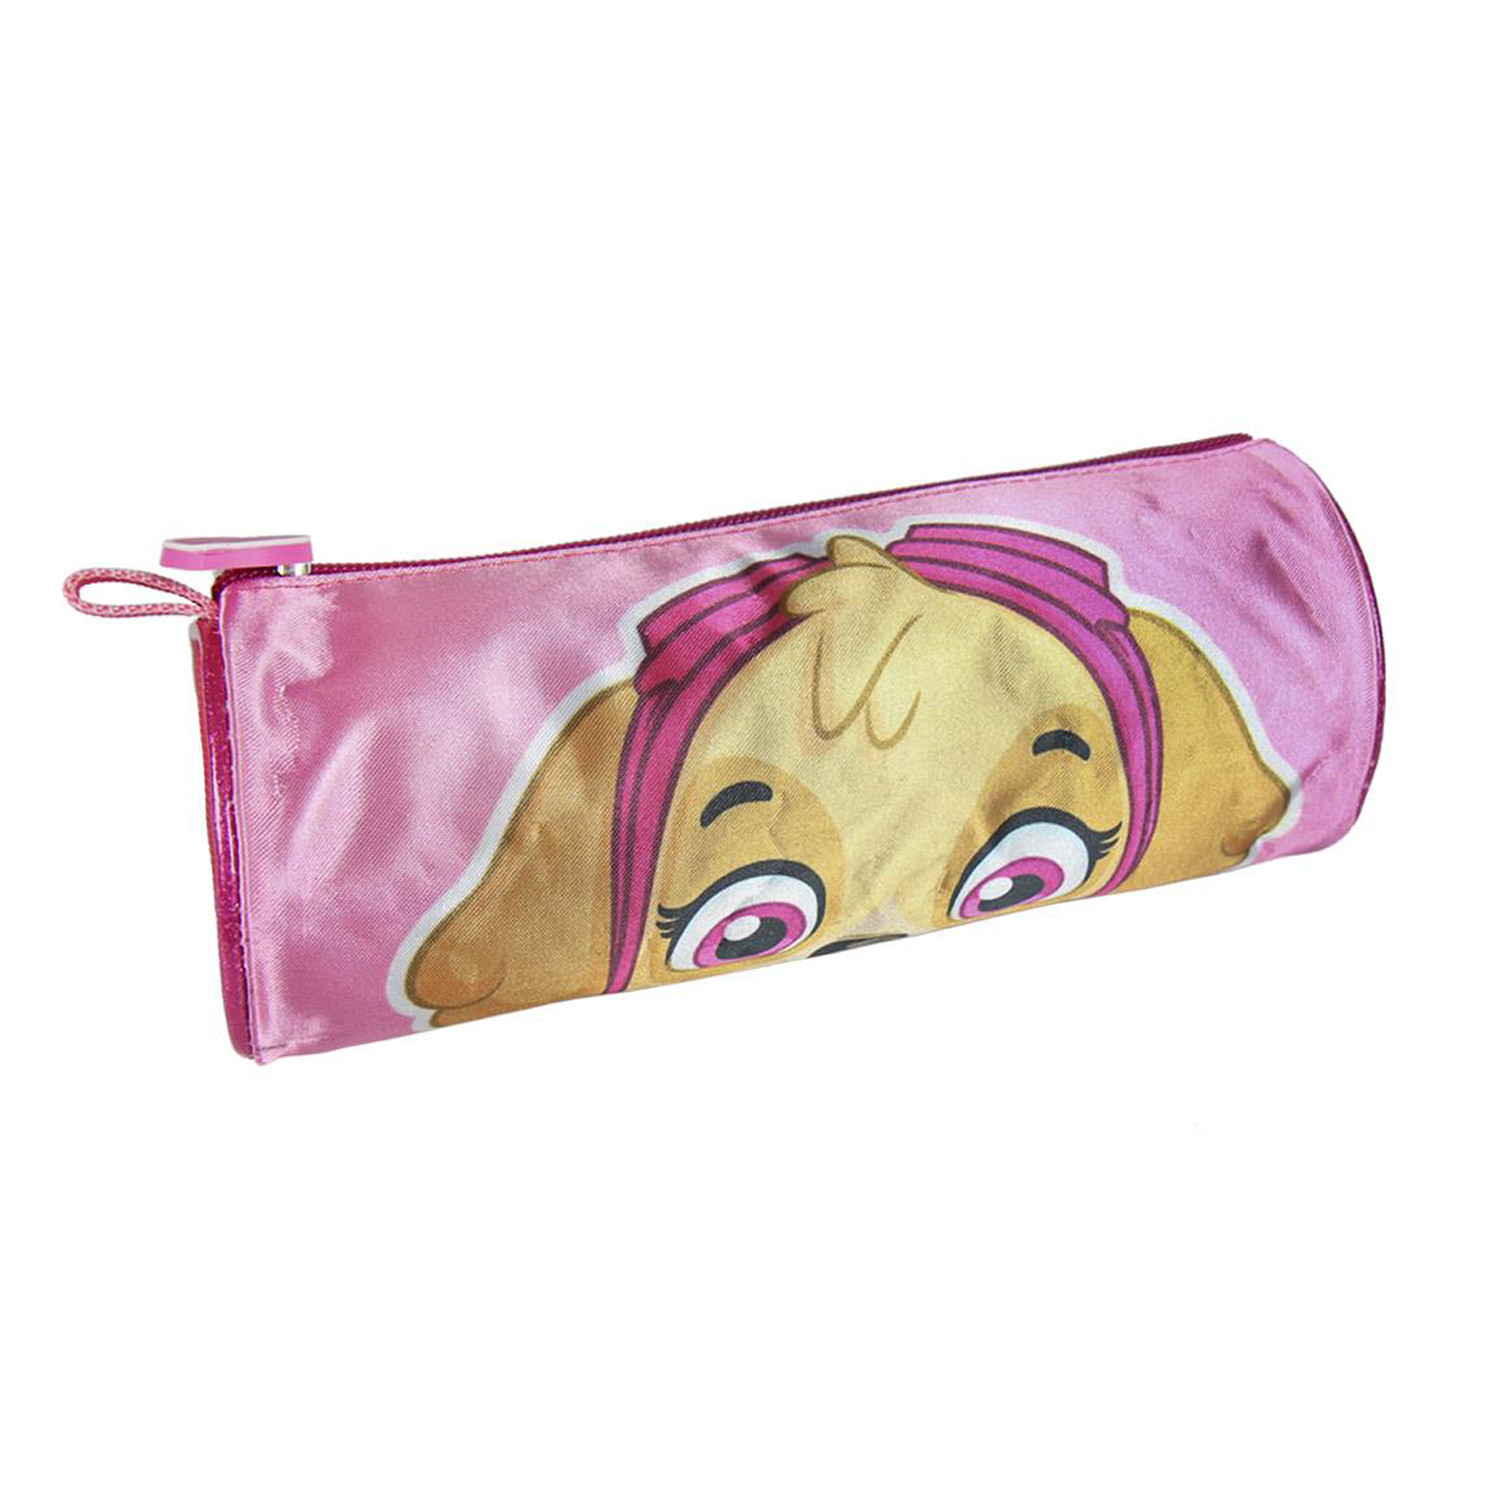 Case Cylindrical pencil case of Skye The Patrol Canine Original Home and More